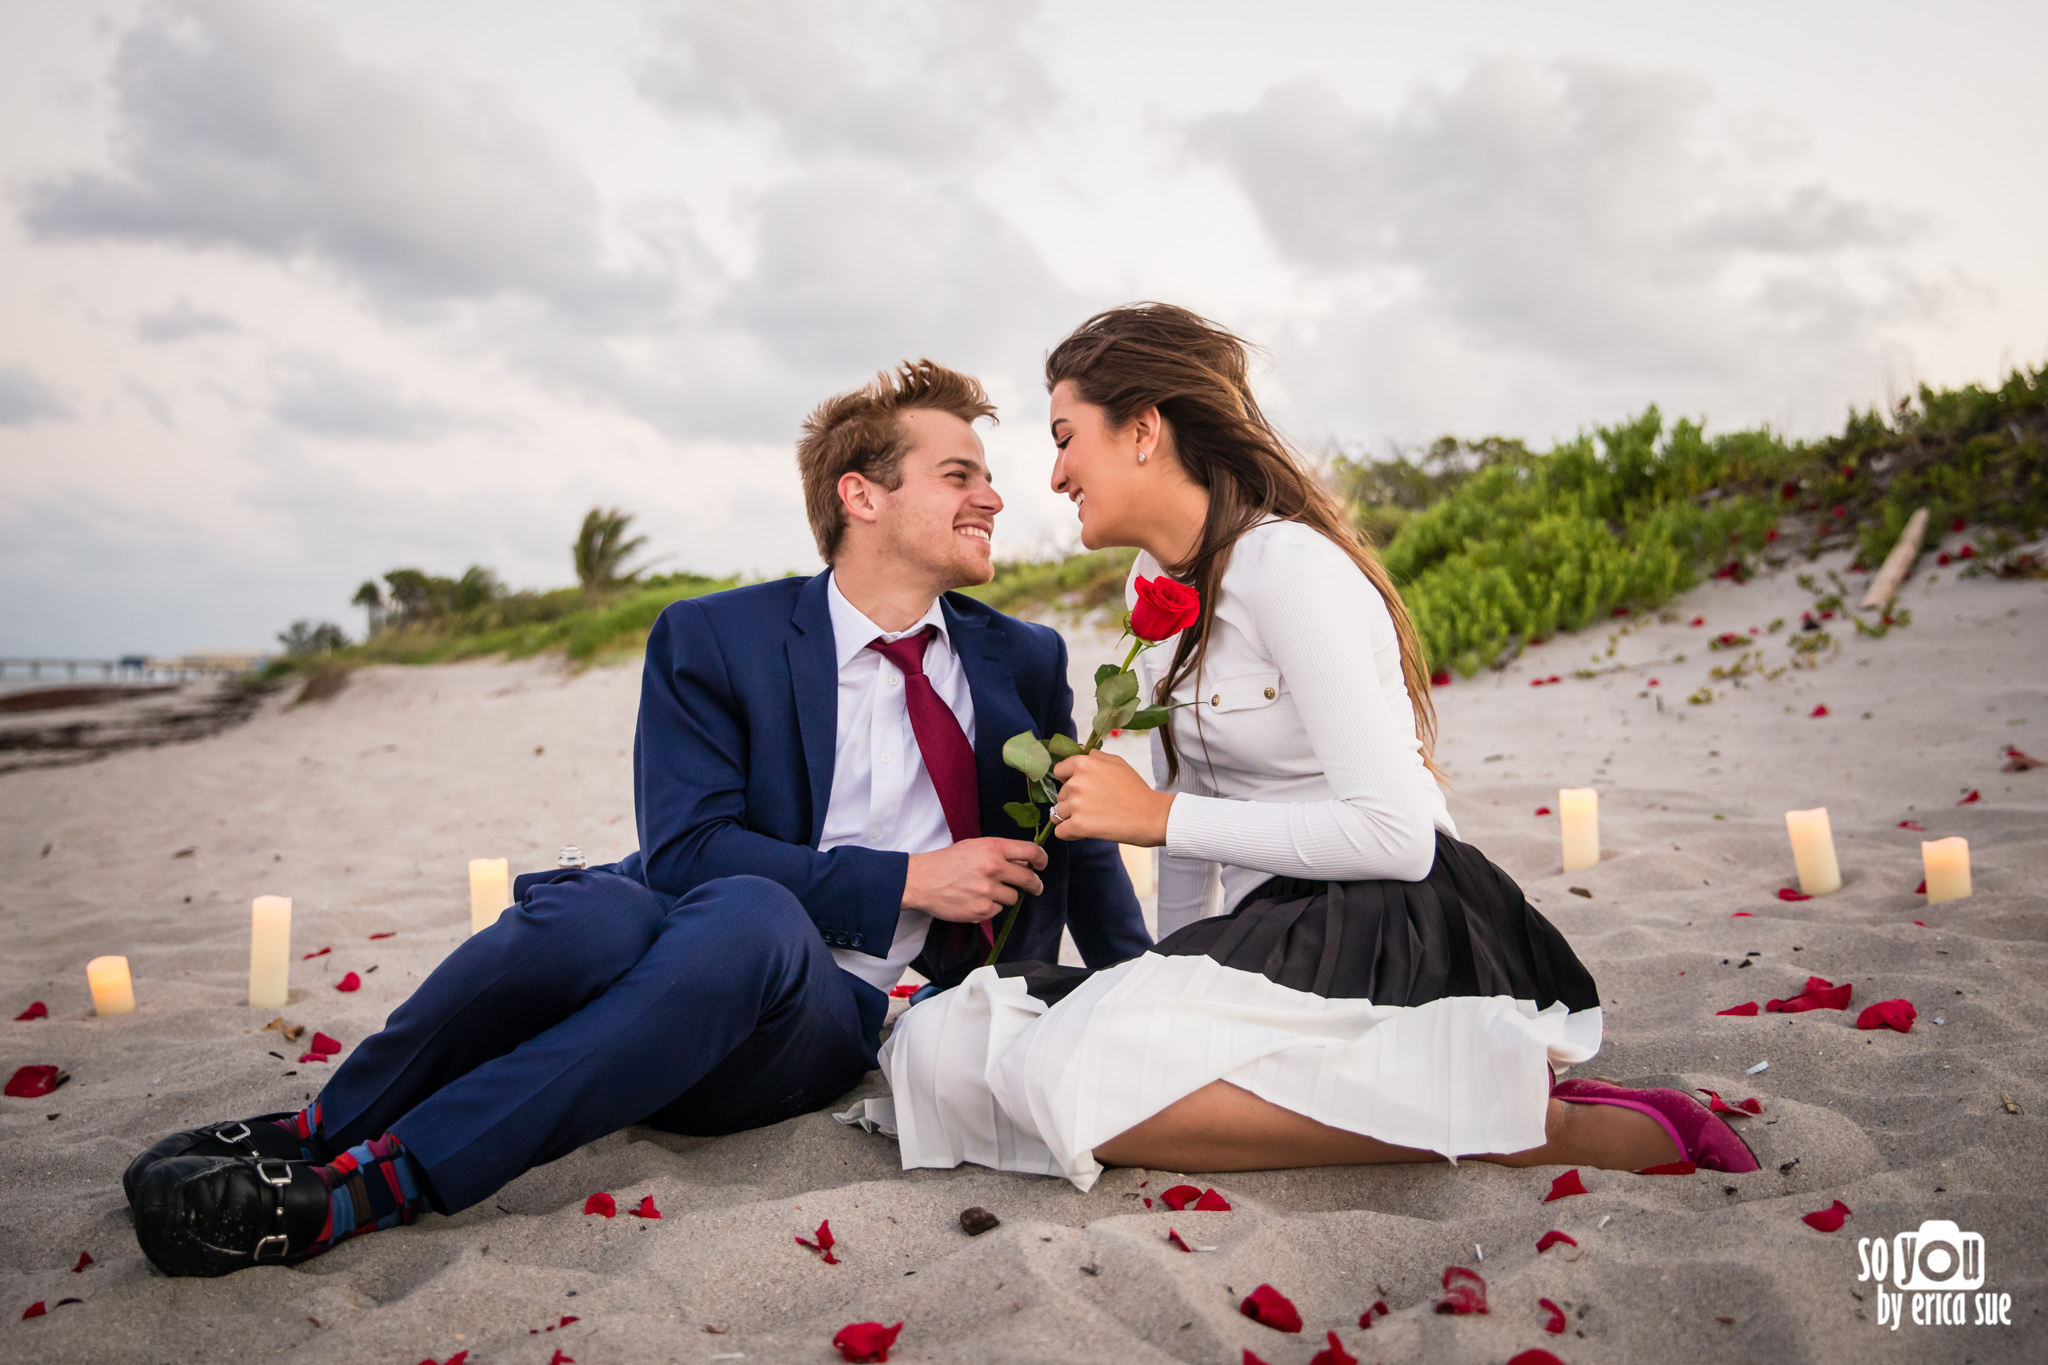 so-you-by-erica-sue-hollywood-fl-photographer-beach-engagement-flowers-candles-5109.jpg